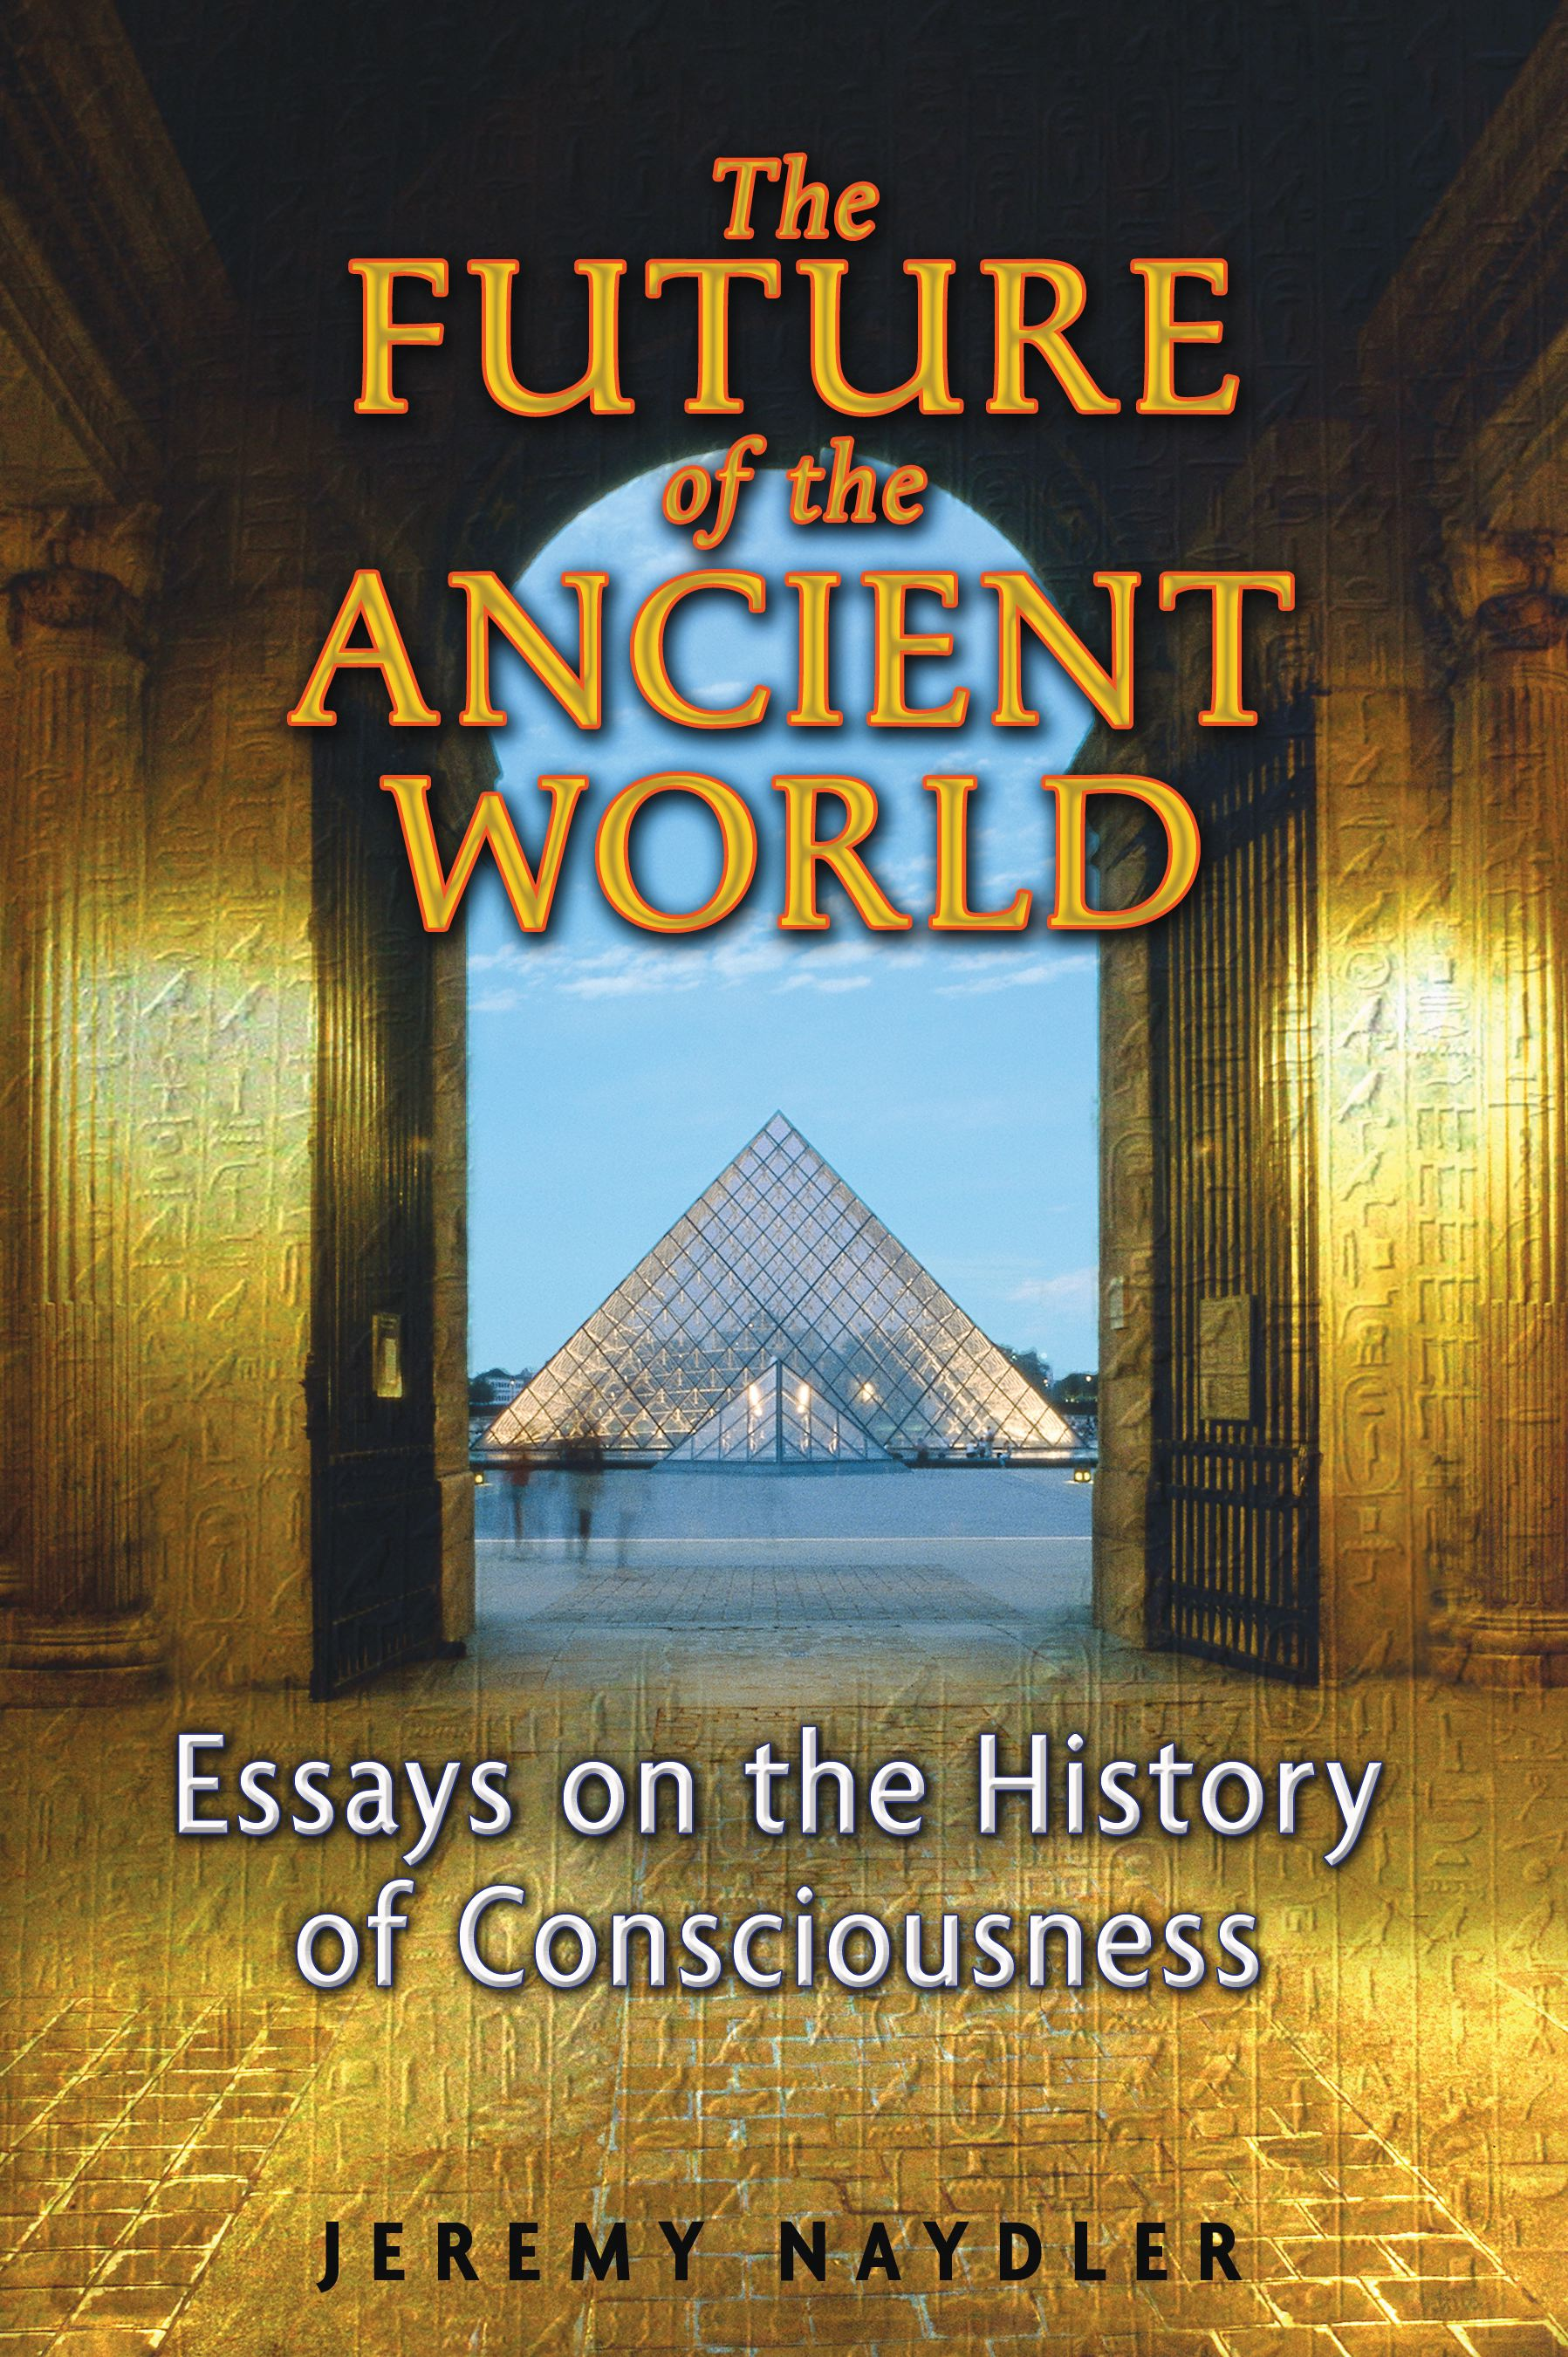 The future of the ancient world 9781594772924 hr